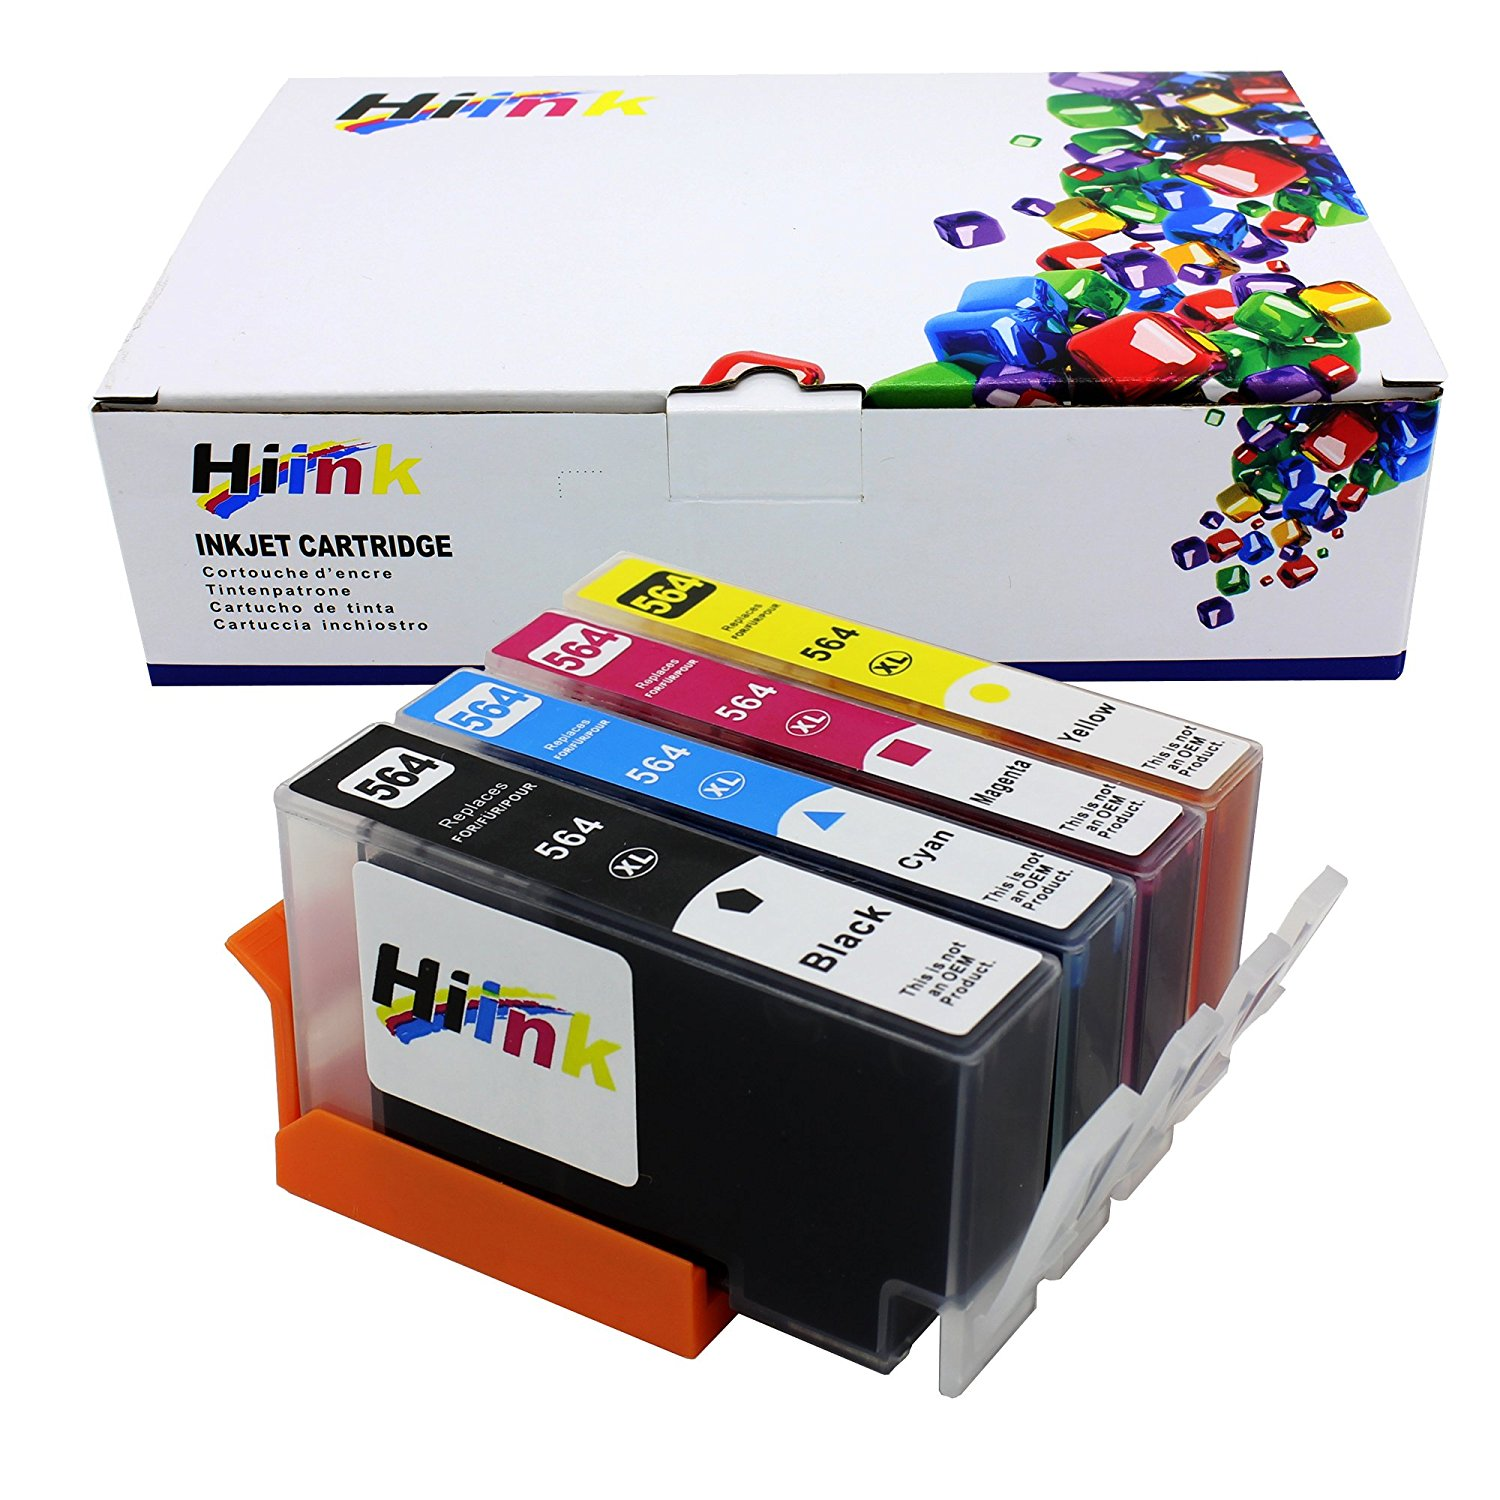 HIINK 4 Pack 564XL Ink Cartridges Replacement for HP 564 ink used in HP Photosmart 5520 6520 7520 5510 6510 7510 7525 B8550 C6380 D7560 Premium C309A C410 Officejet 4620 Deskjet 3520(1B1C1M1Y, 4-Pack)